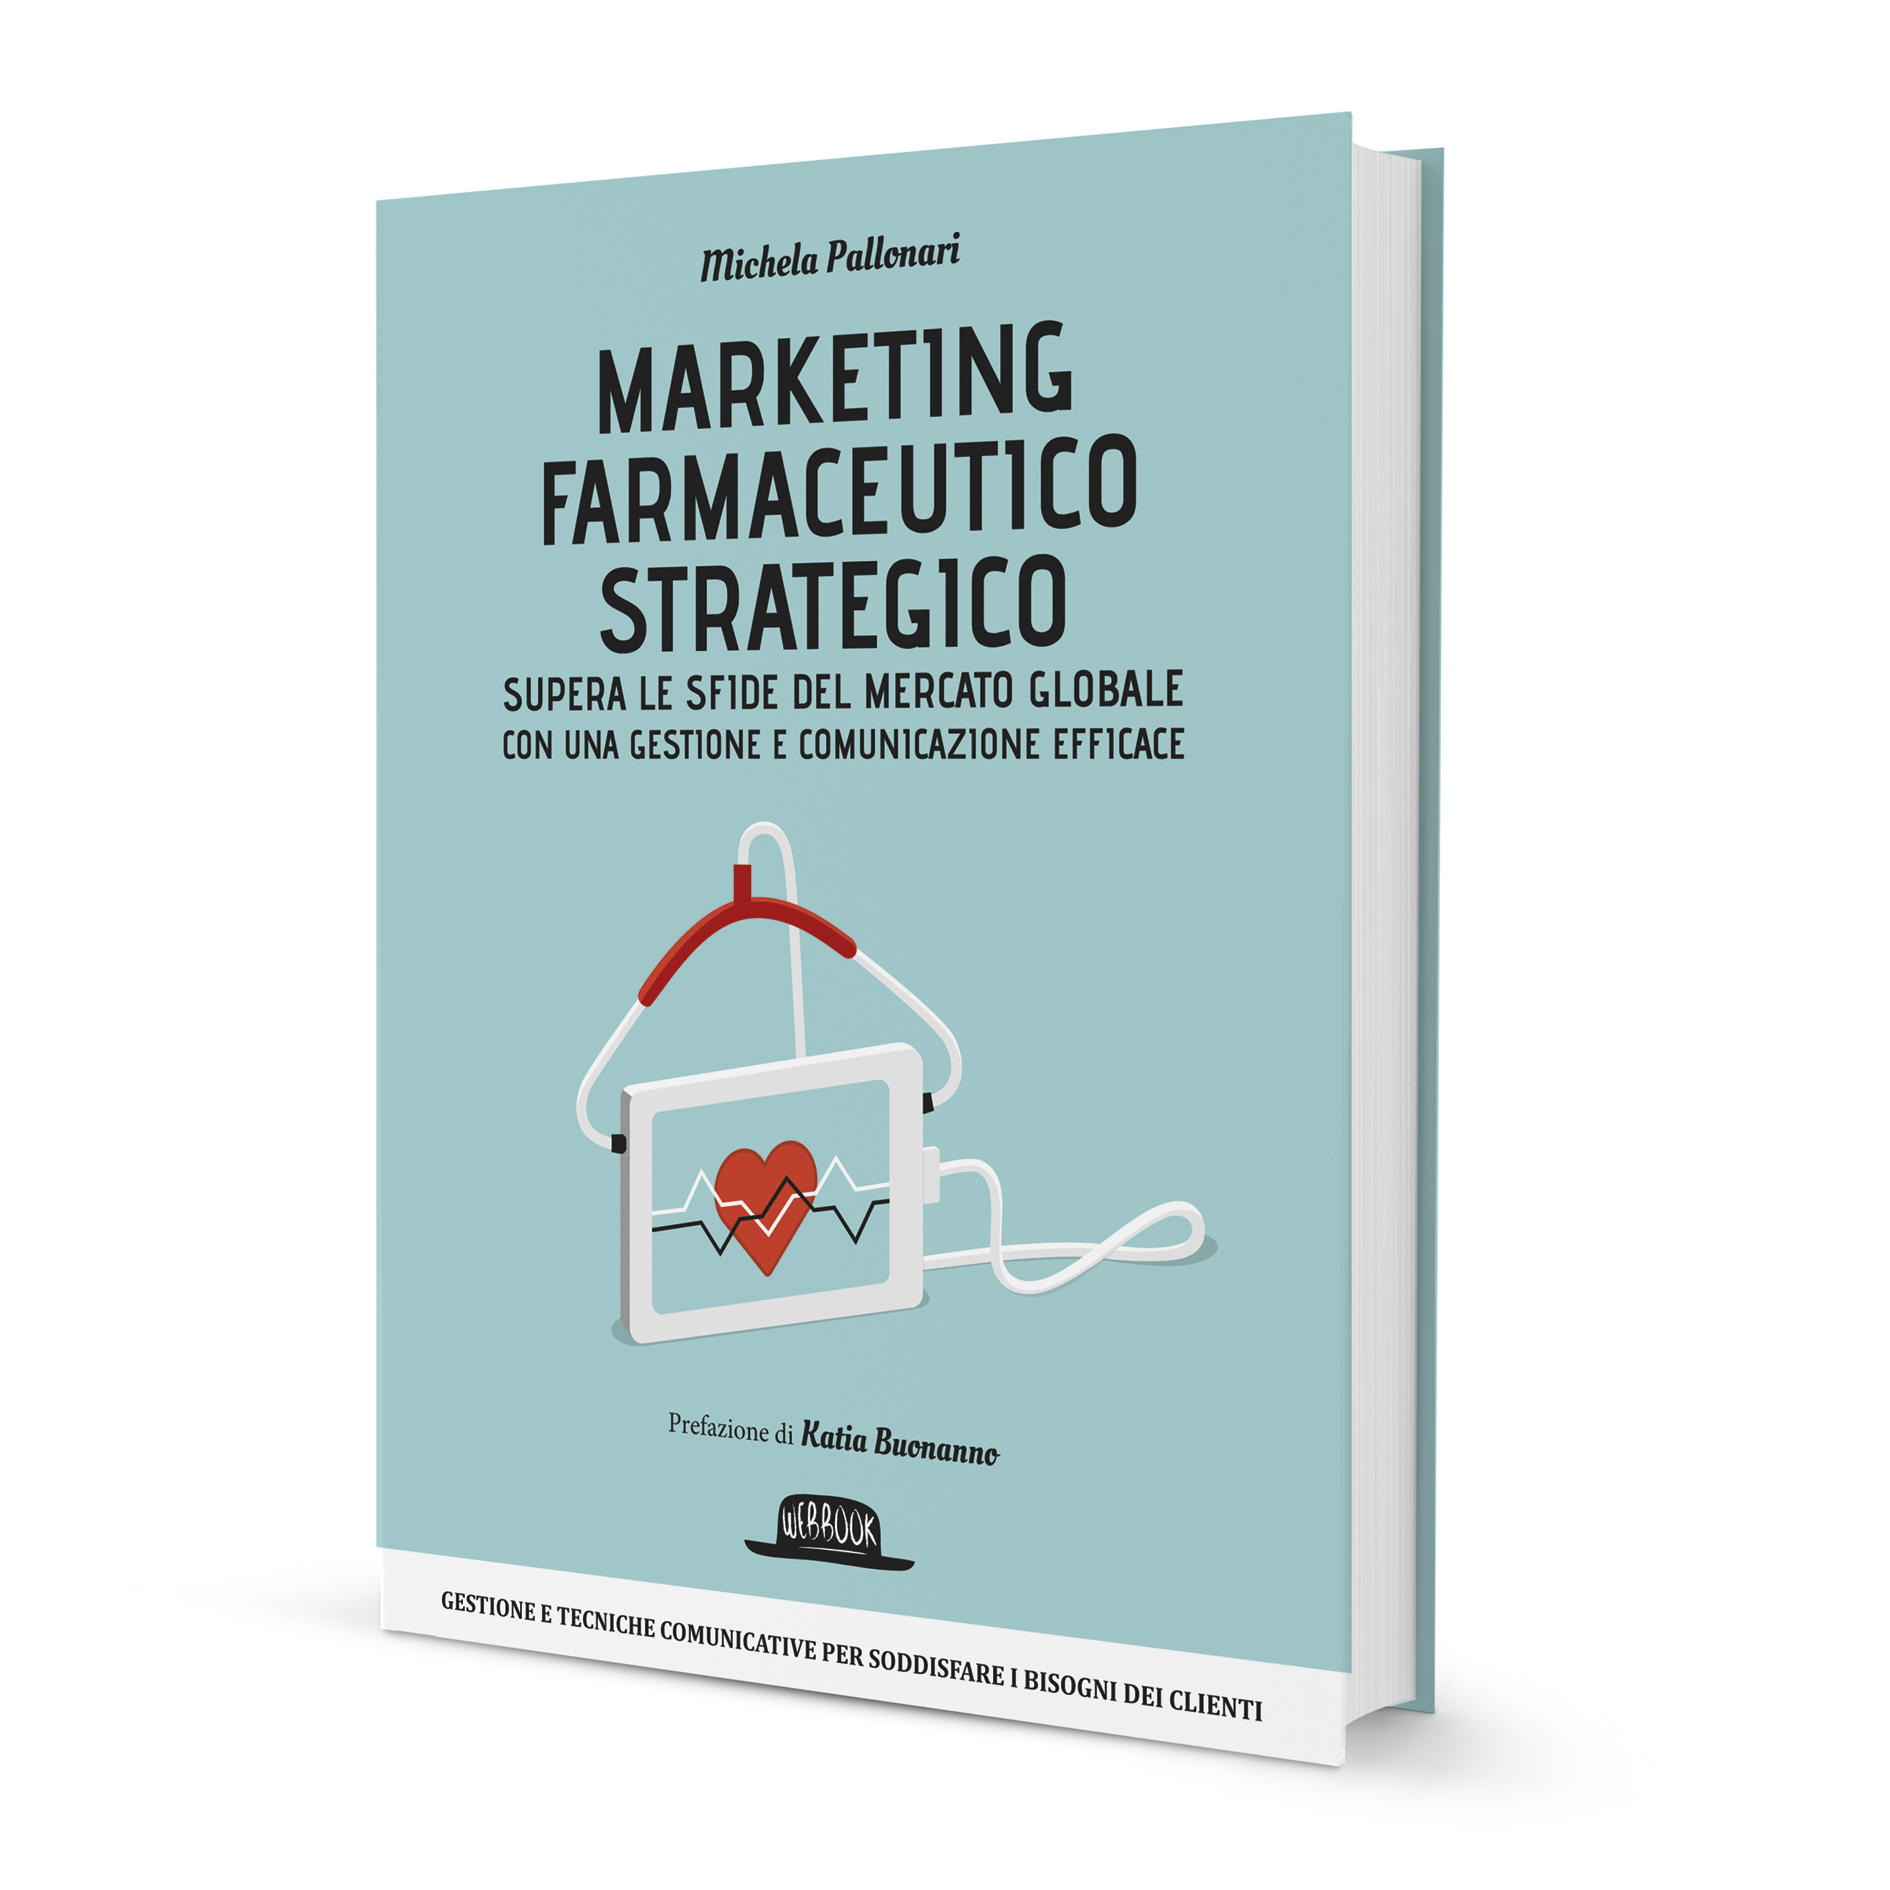 Marketing Farmaceutico Libro Marketing Farmaceutico Strategico Supera Le Sfide Del Mercato Globale Con Una Gestione E Comunicazione Efficace